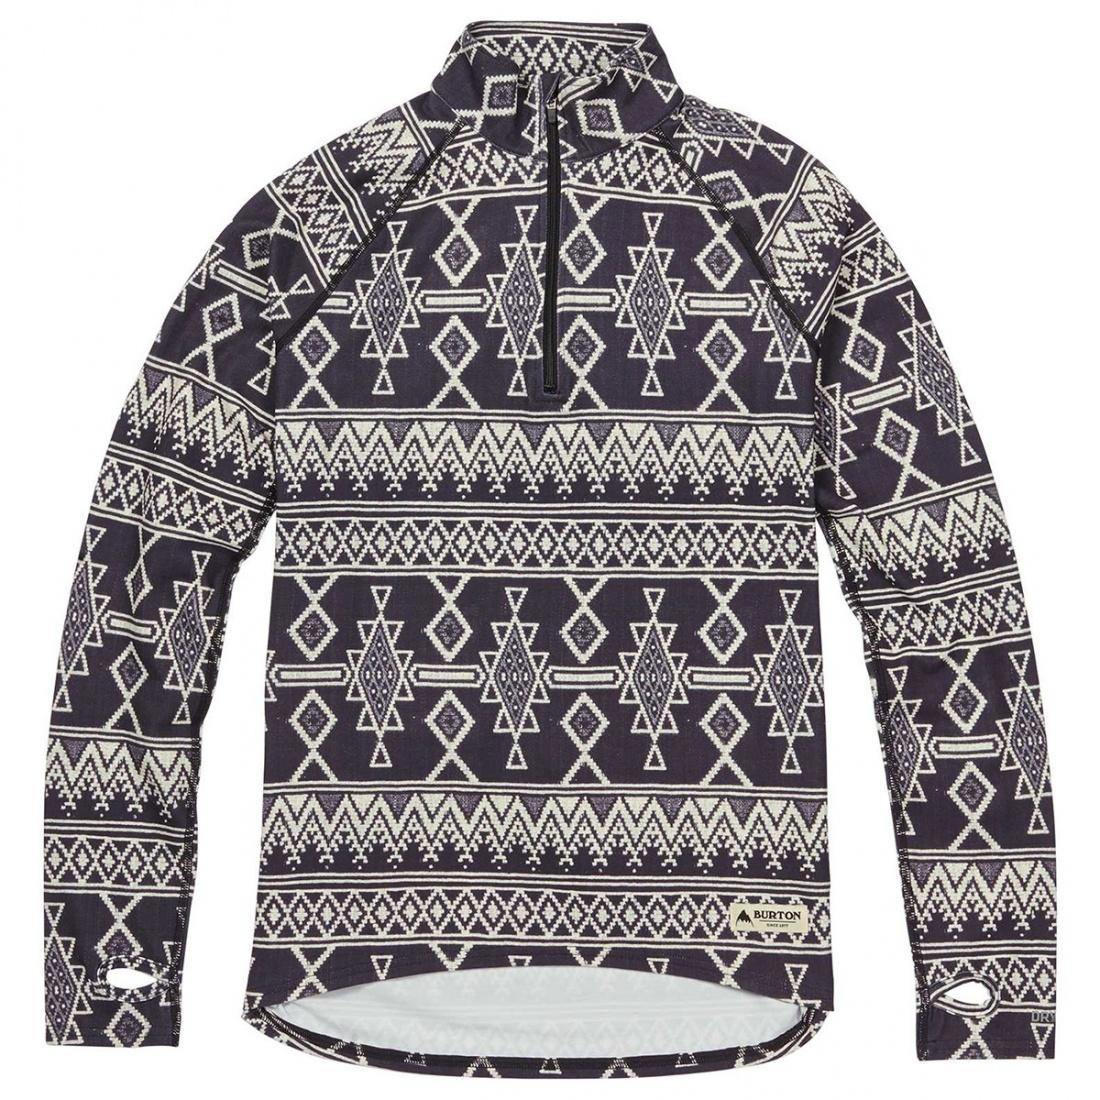 Термобелье Burton Expedition 1/4 Zip Base Layer купить в Boardshop №1